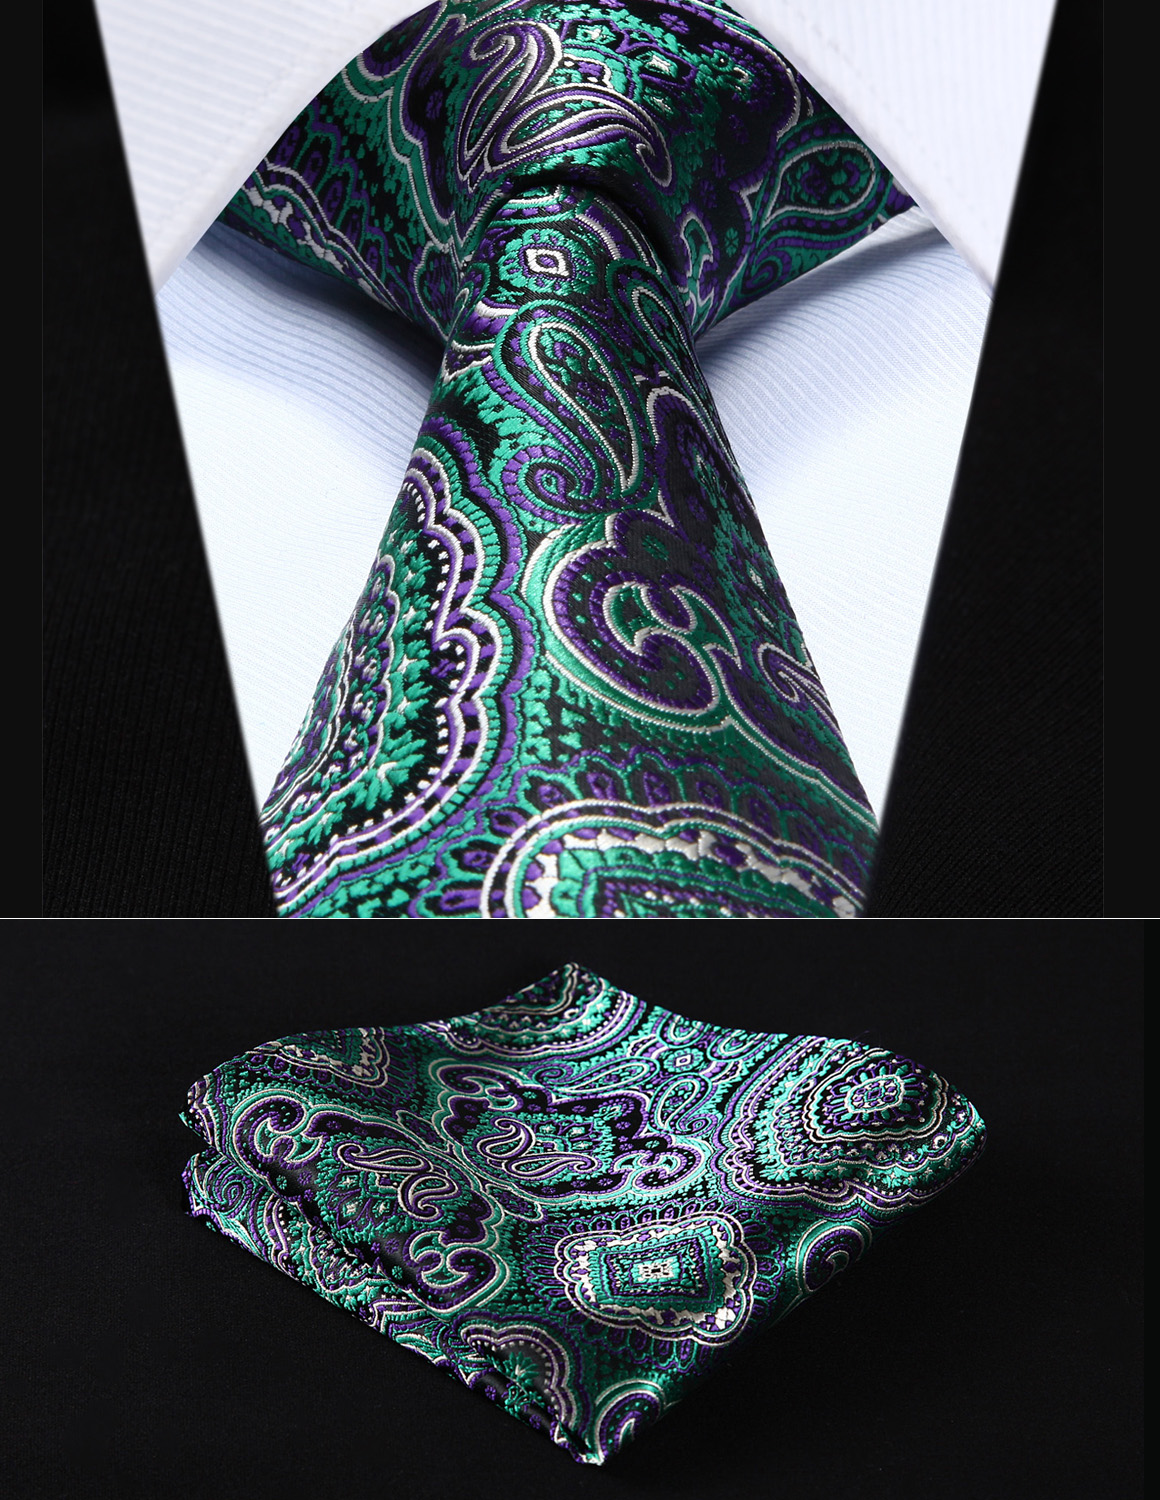 Party Wedding Classic Pocket Square Tie TP707P8S Purple Green Paisley 3.4